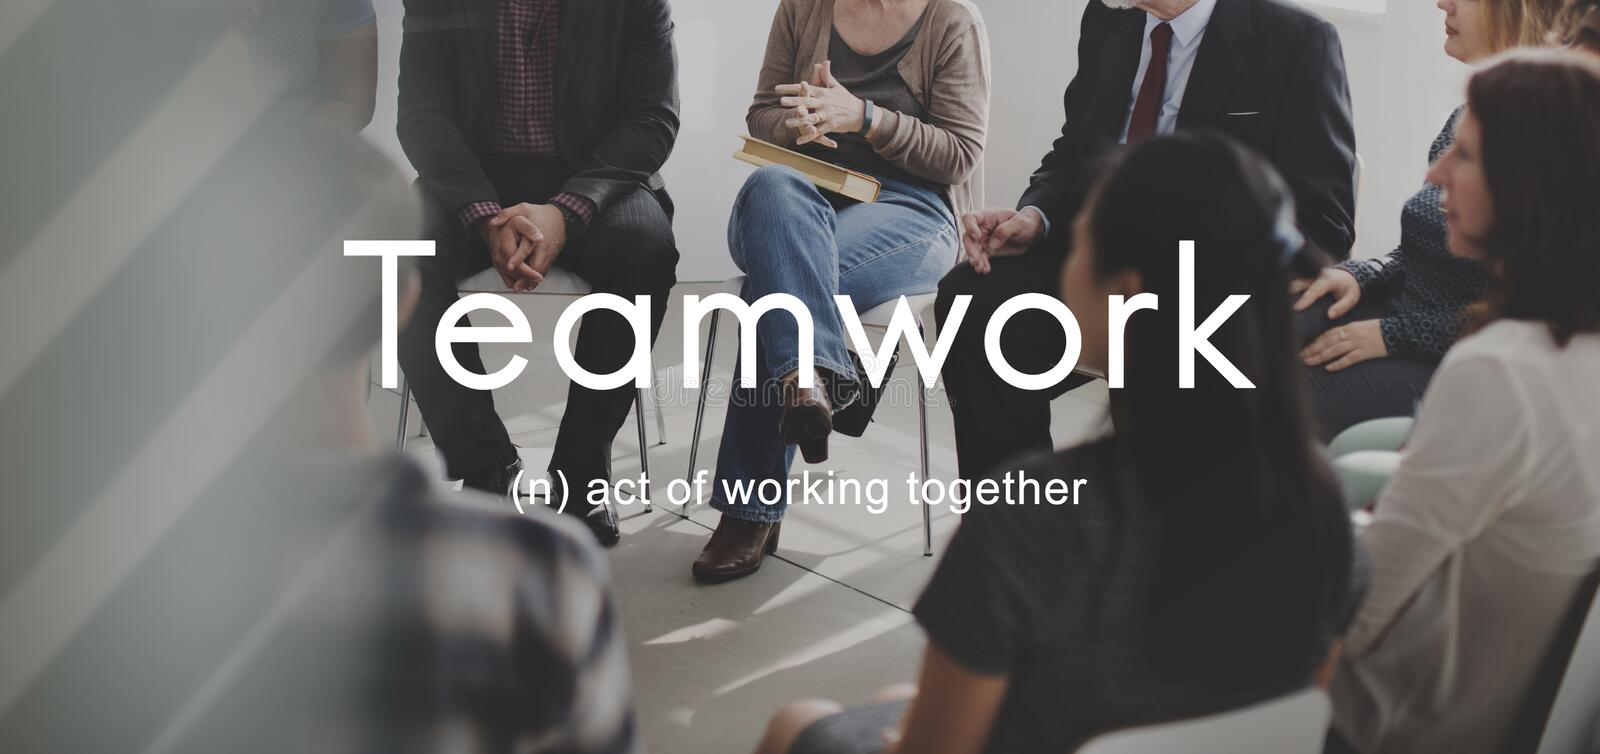 Teamwork Alliance Collaboration Company Team Concept images stock